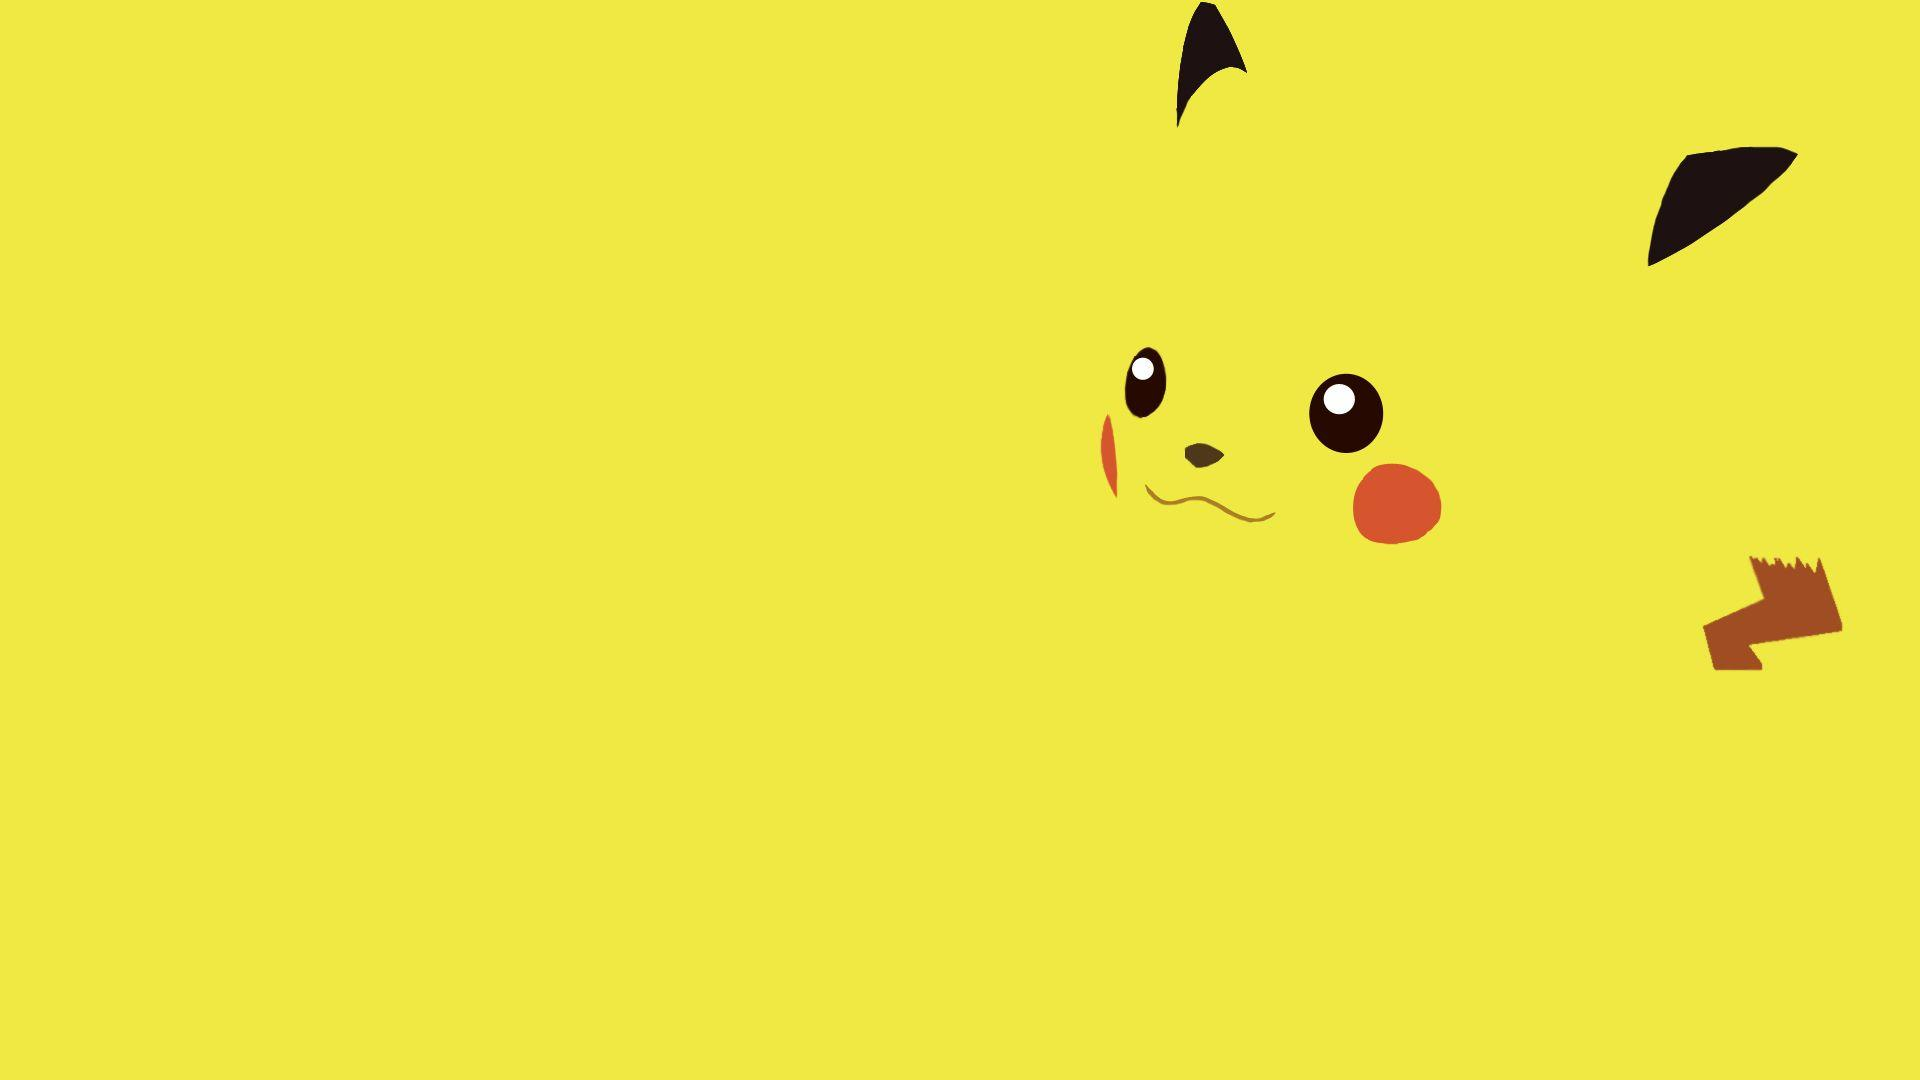 Pikachu Hd Wallpapers Wallpaper Cave